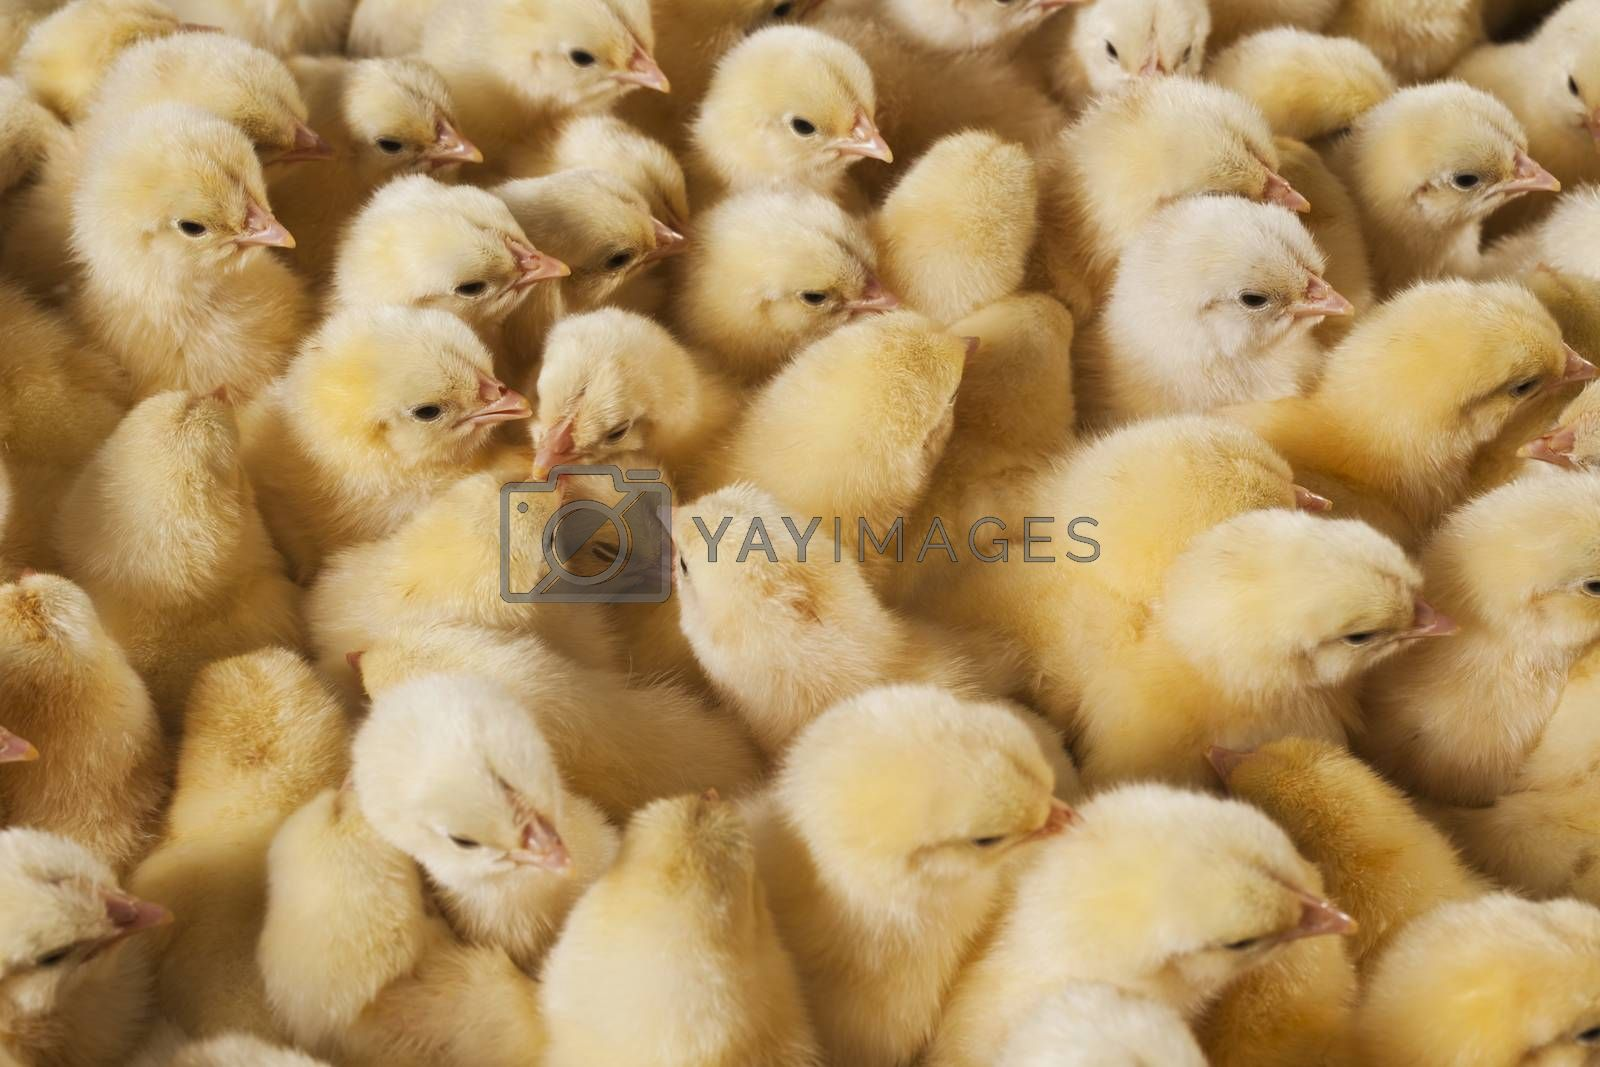 Royalty free image of Large group of baby chicks on chicken farm by emirkoo